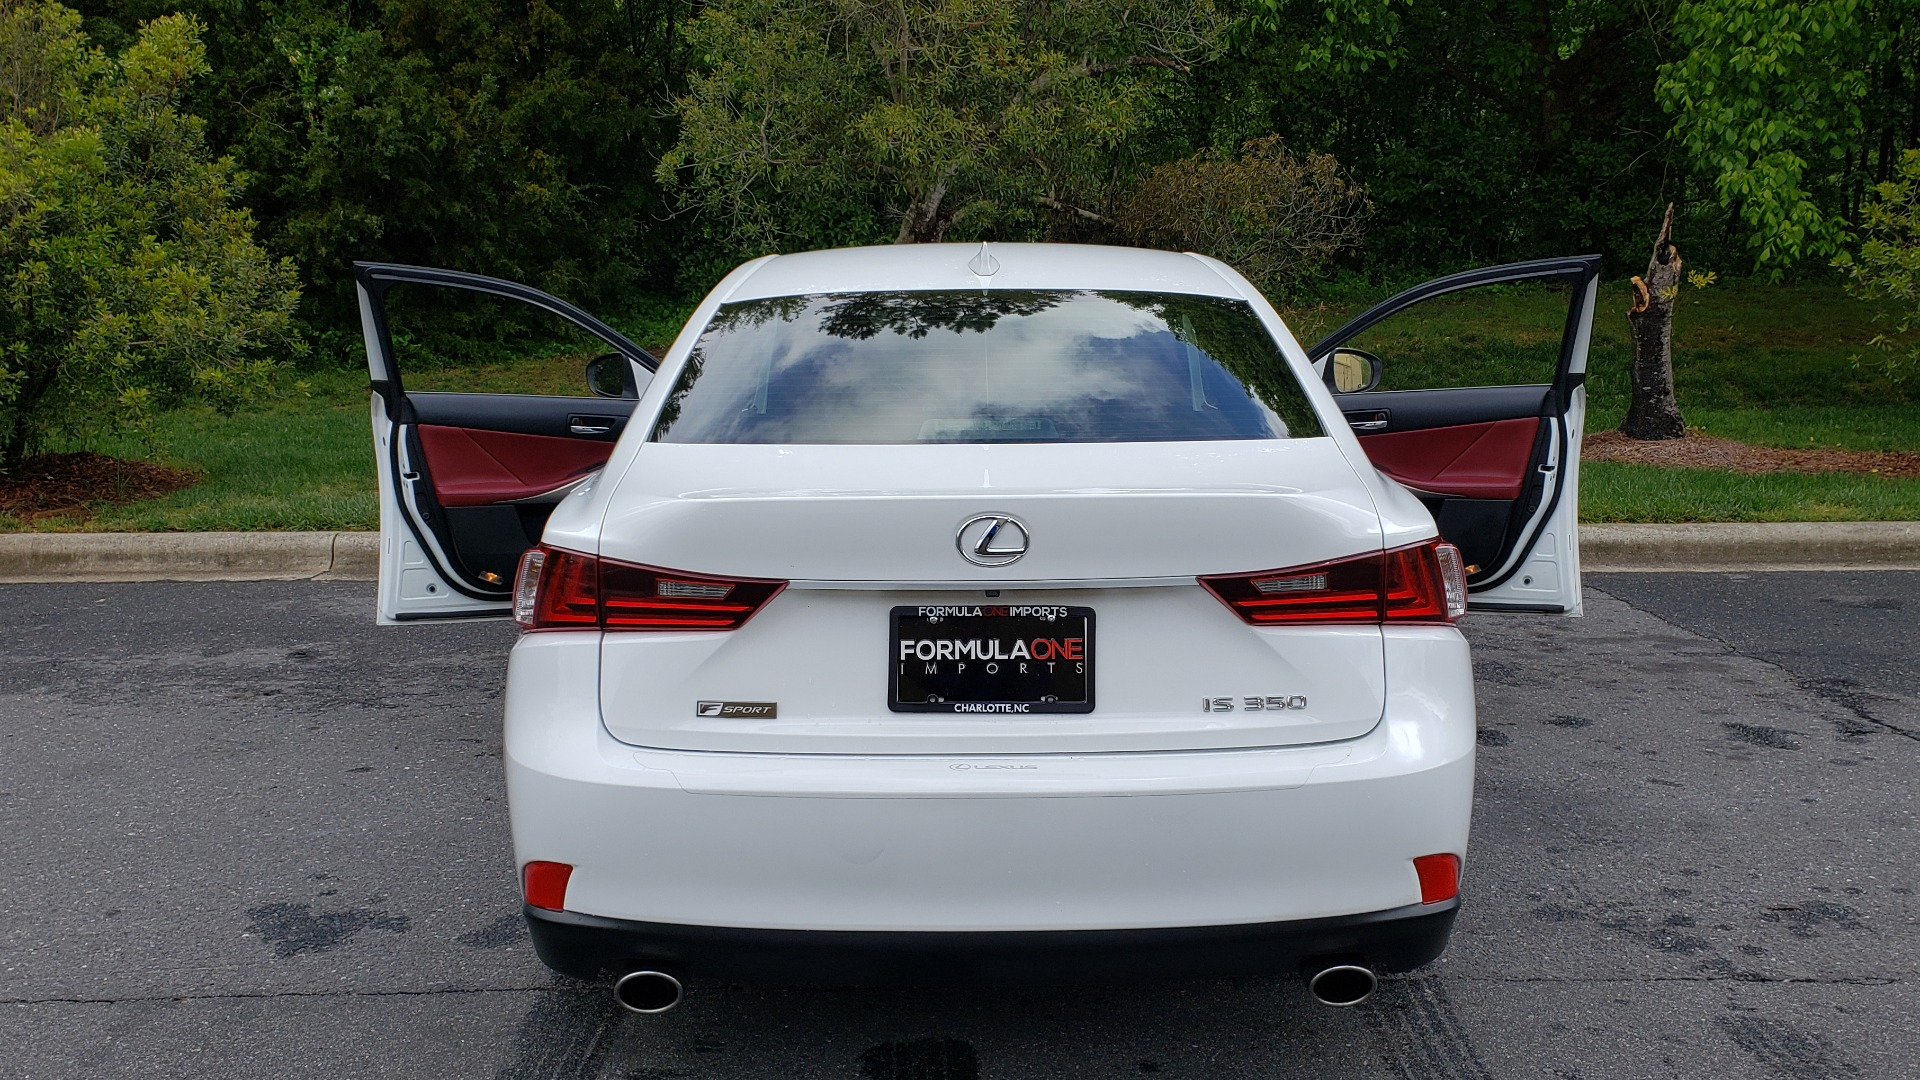 Used 2014 Lexus IS 350 F-SPORT / NAV / SUNROOF / REARVIEW / BSM / MARK LEV SND for sale Sold at Formula Imports in Charlotte NC 28227 25